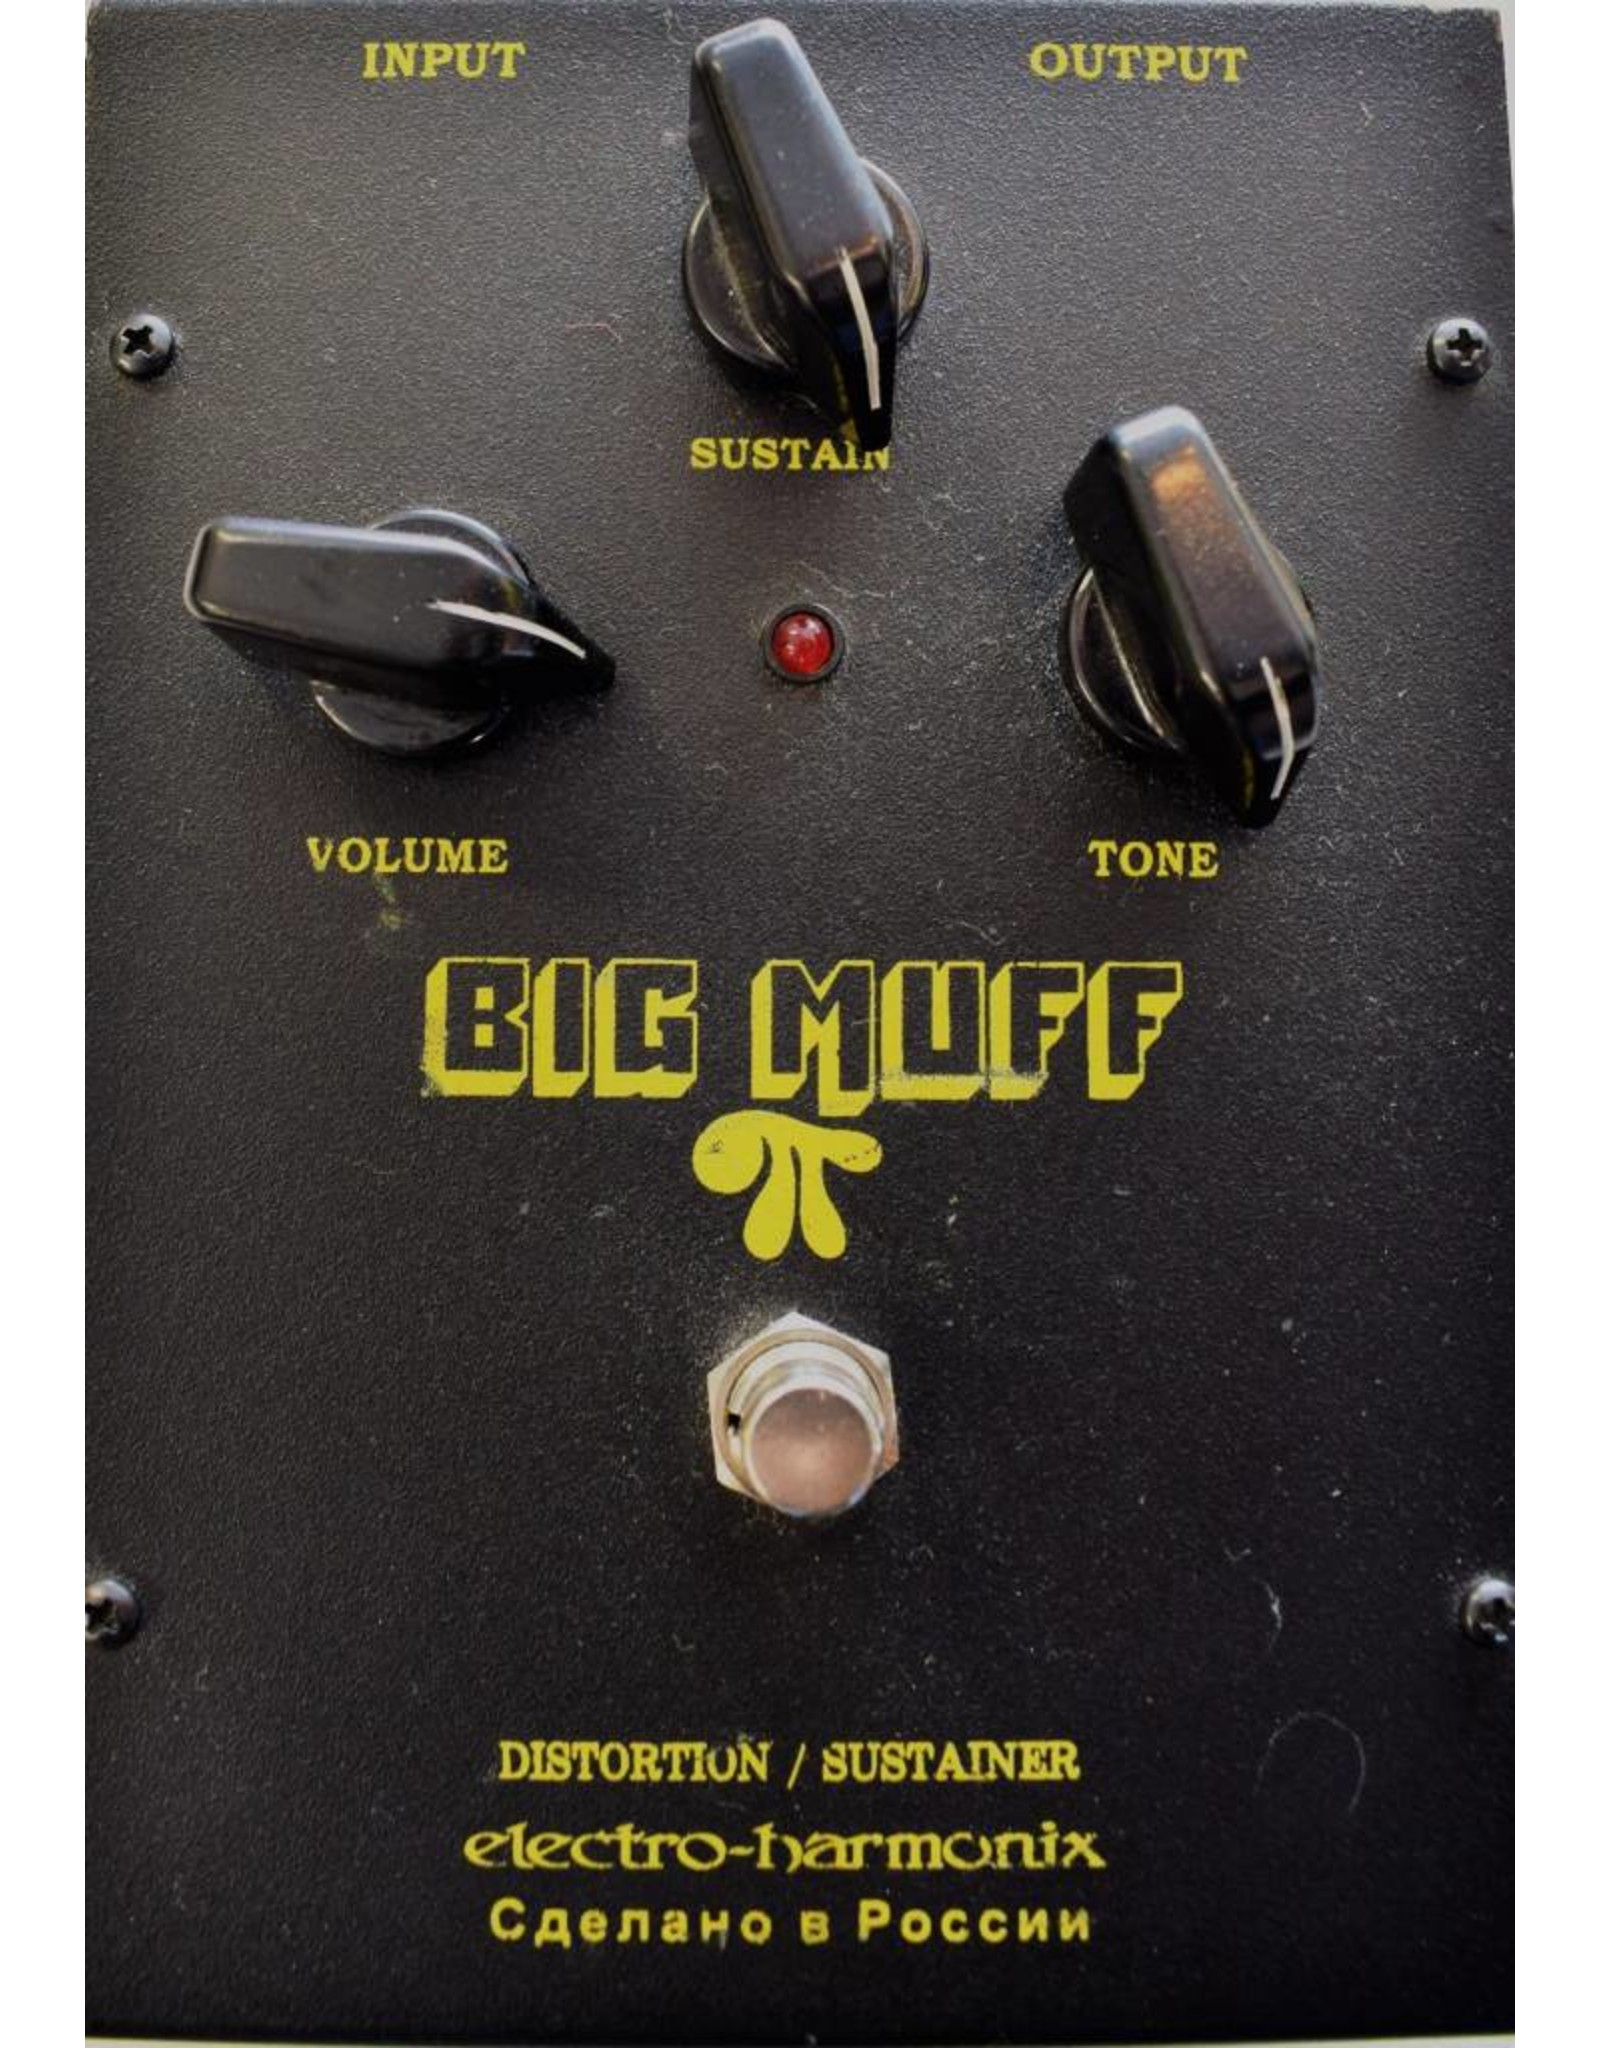 Big Muff Electro-Harmonix, Distortion/Sustainer, Pre-Owned